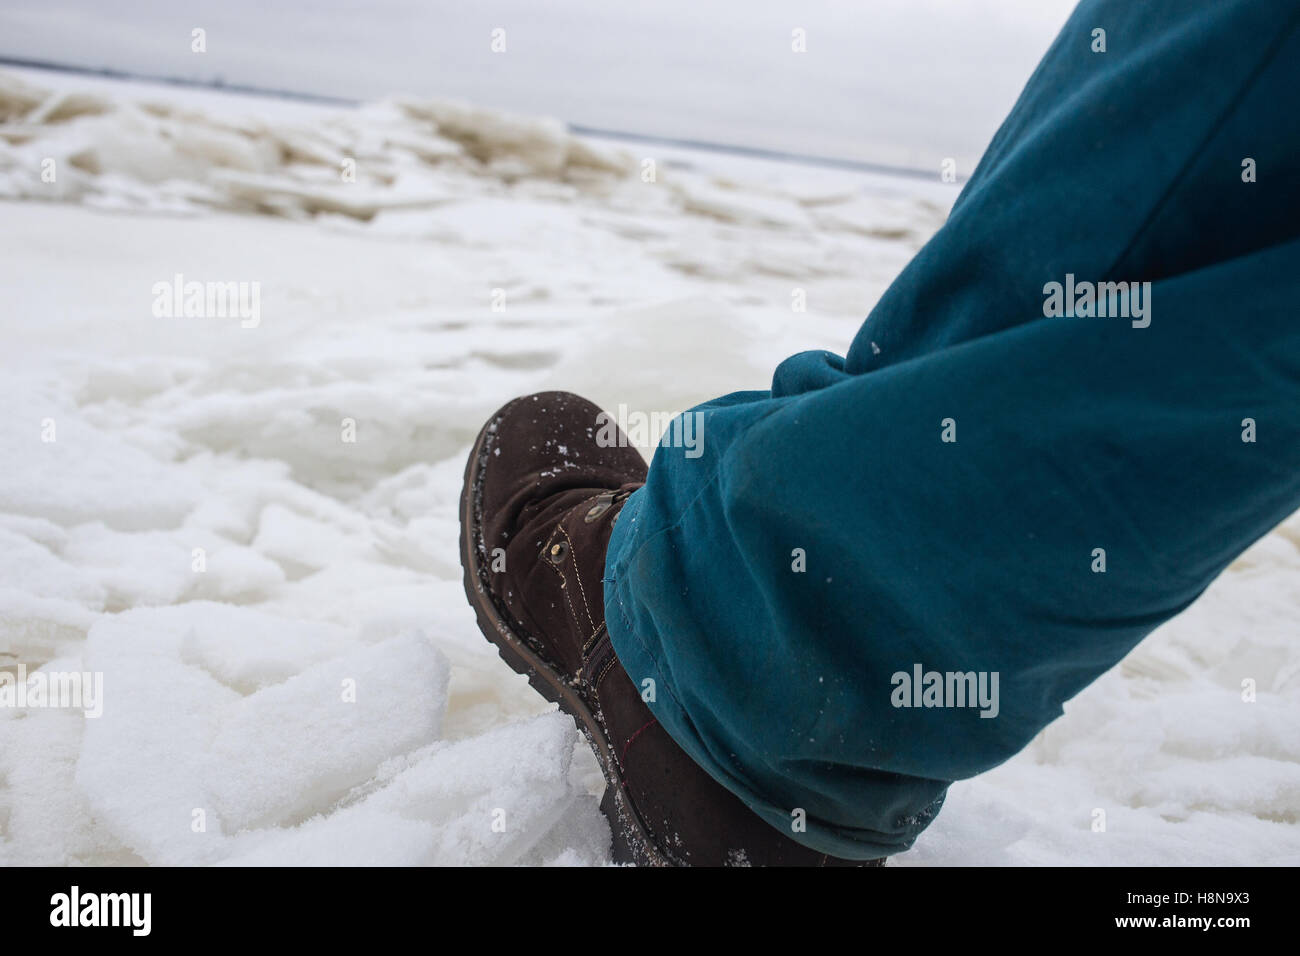 Male Feet On The Weak Bad River Ice. Concept Danger Falling Through the ice. - Stock Image